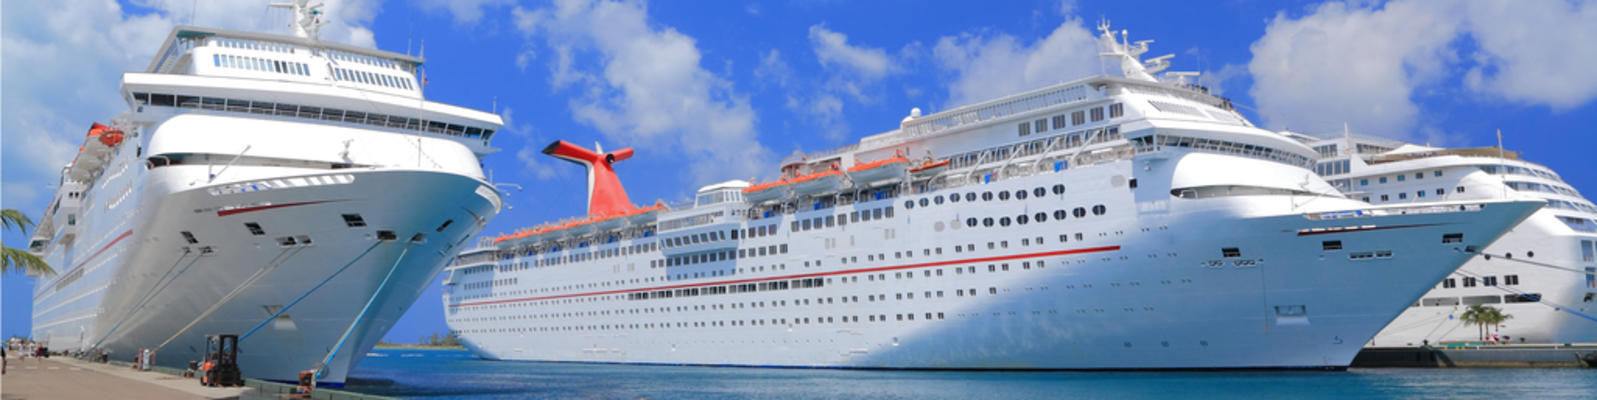 What's the Best Cruise Ship Size for You? (Photo: Worachat Sodsri/Shutterstock)